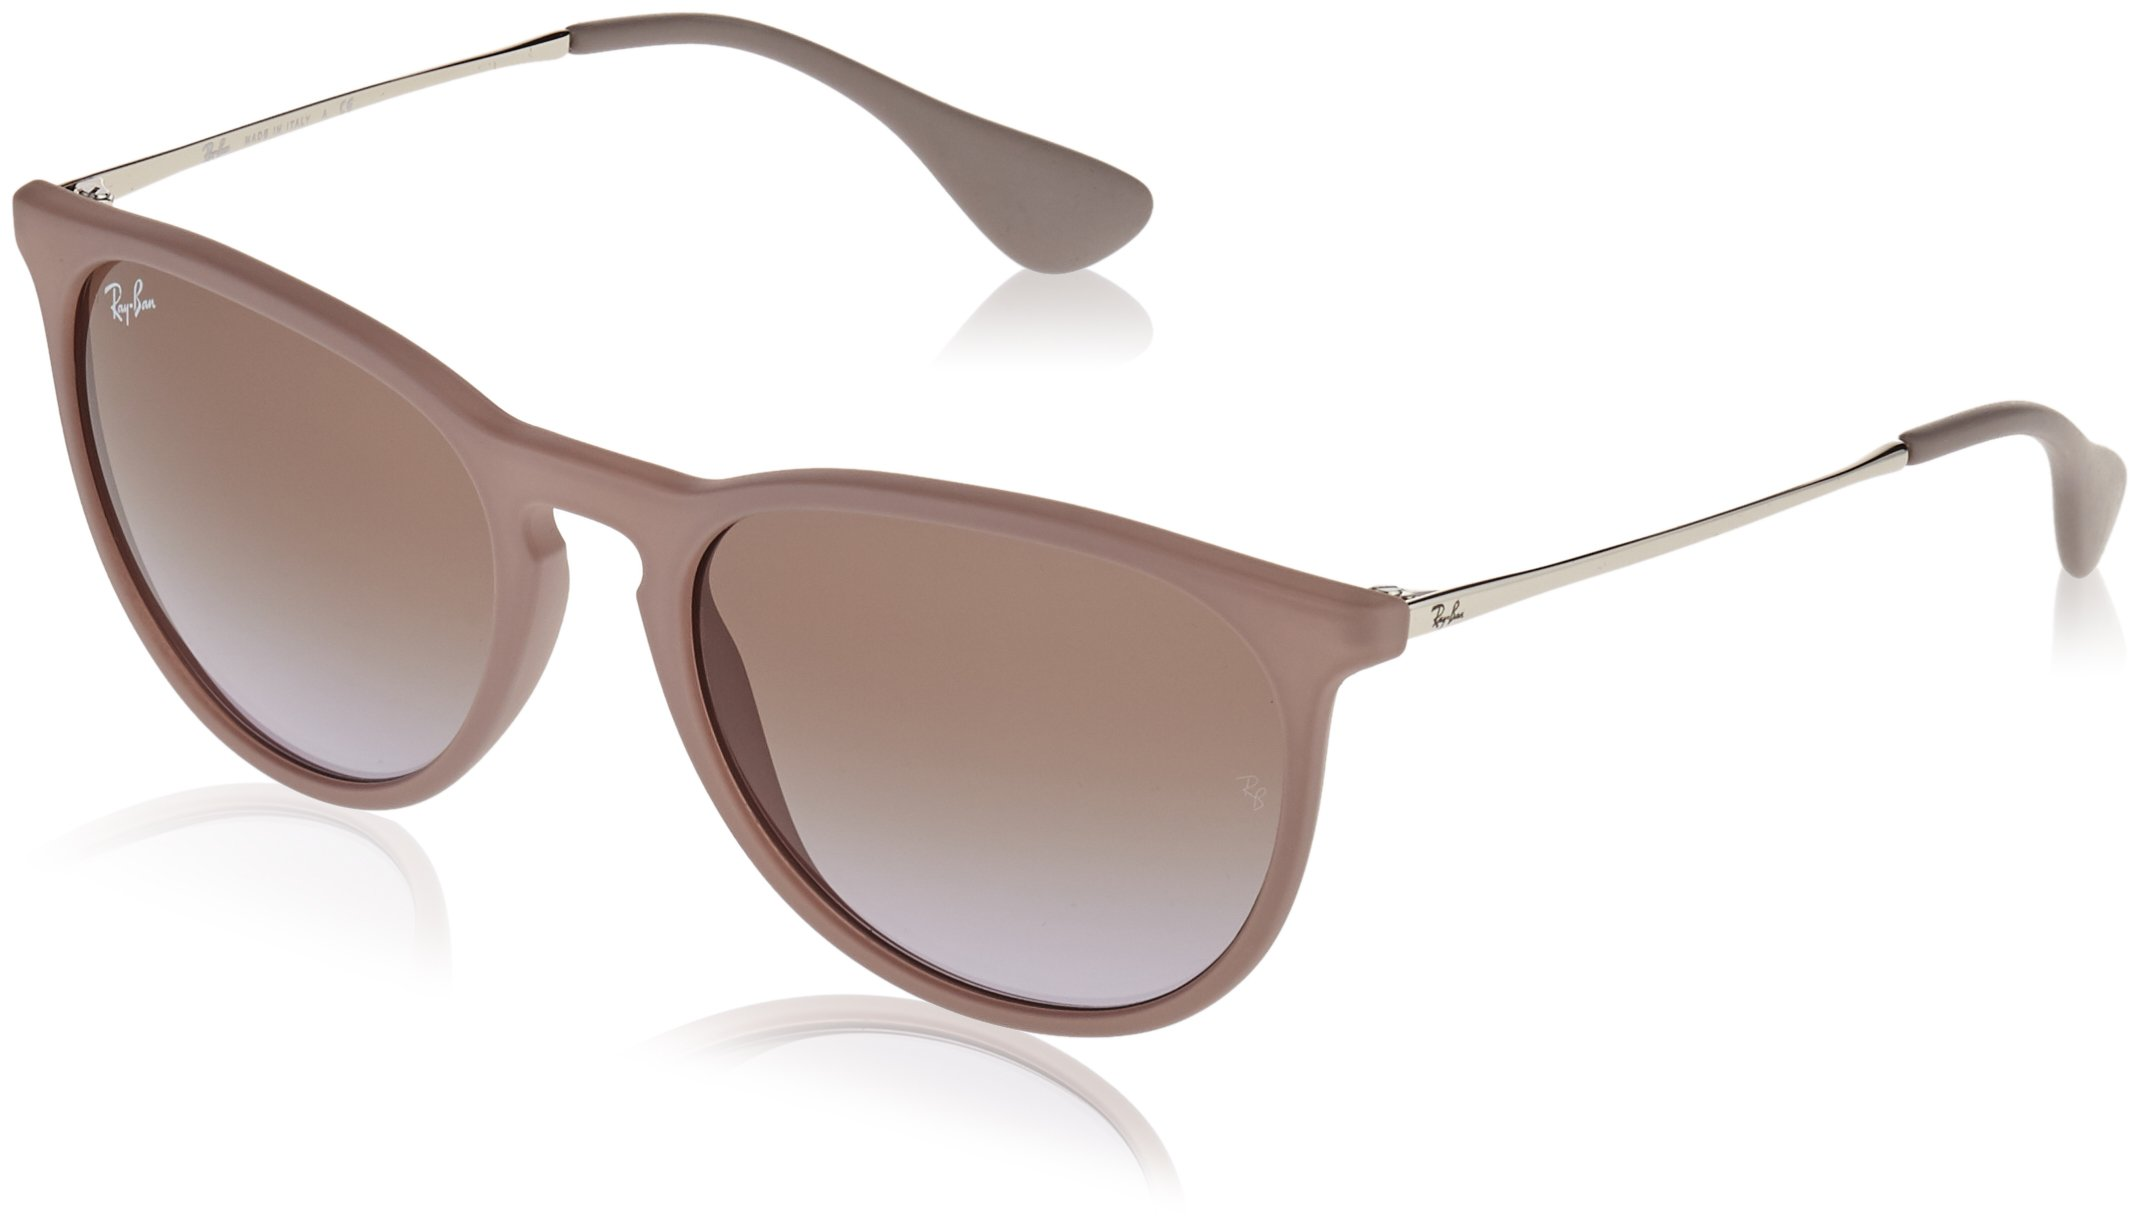 RAY-BAN Women's RB4171 Erika Round Sunglasses, Dark Rubber Sand/Violet Brown Gradient, 54 mm by RAY-BAN